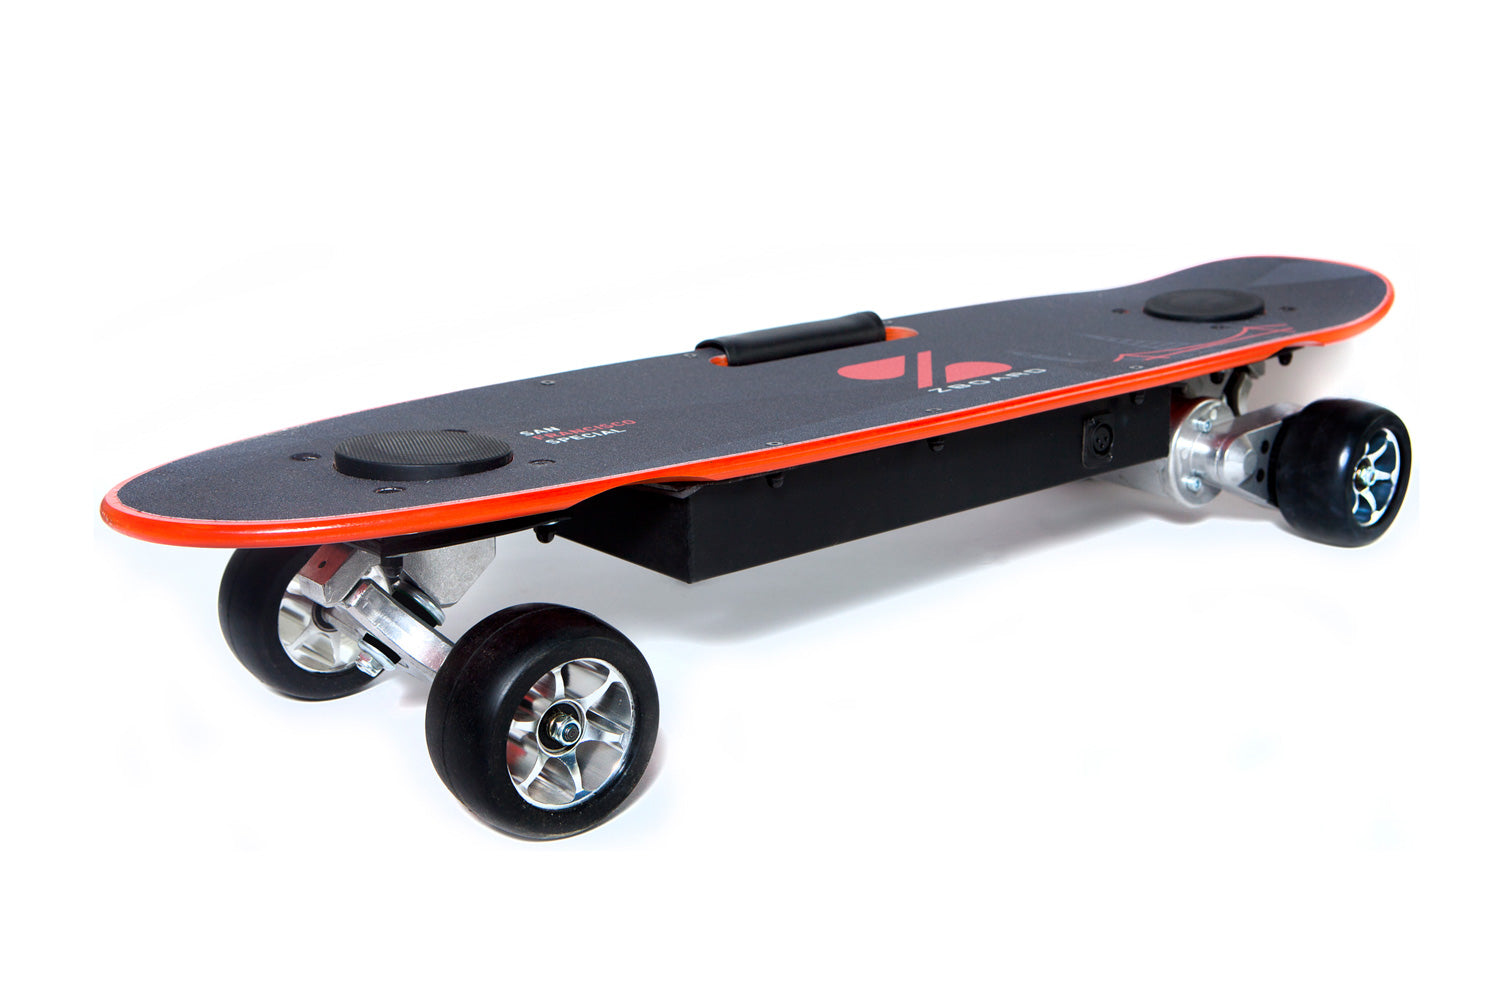 SF Motorized Skateboard